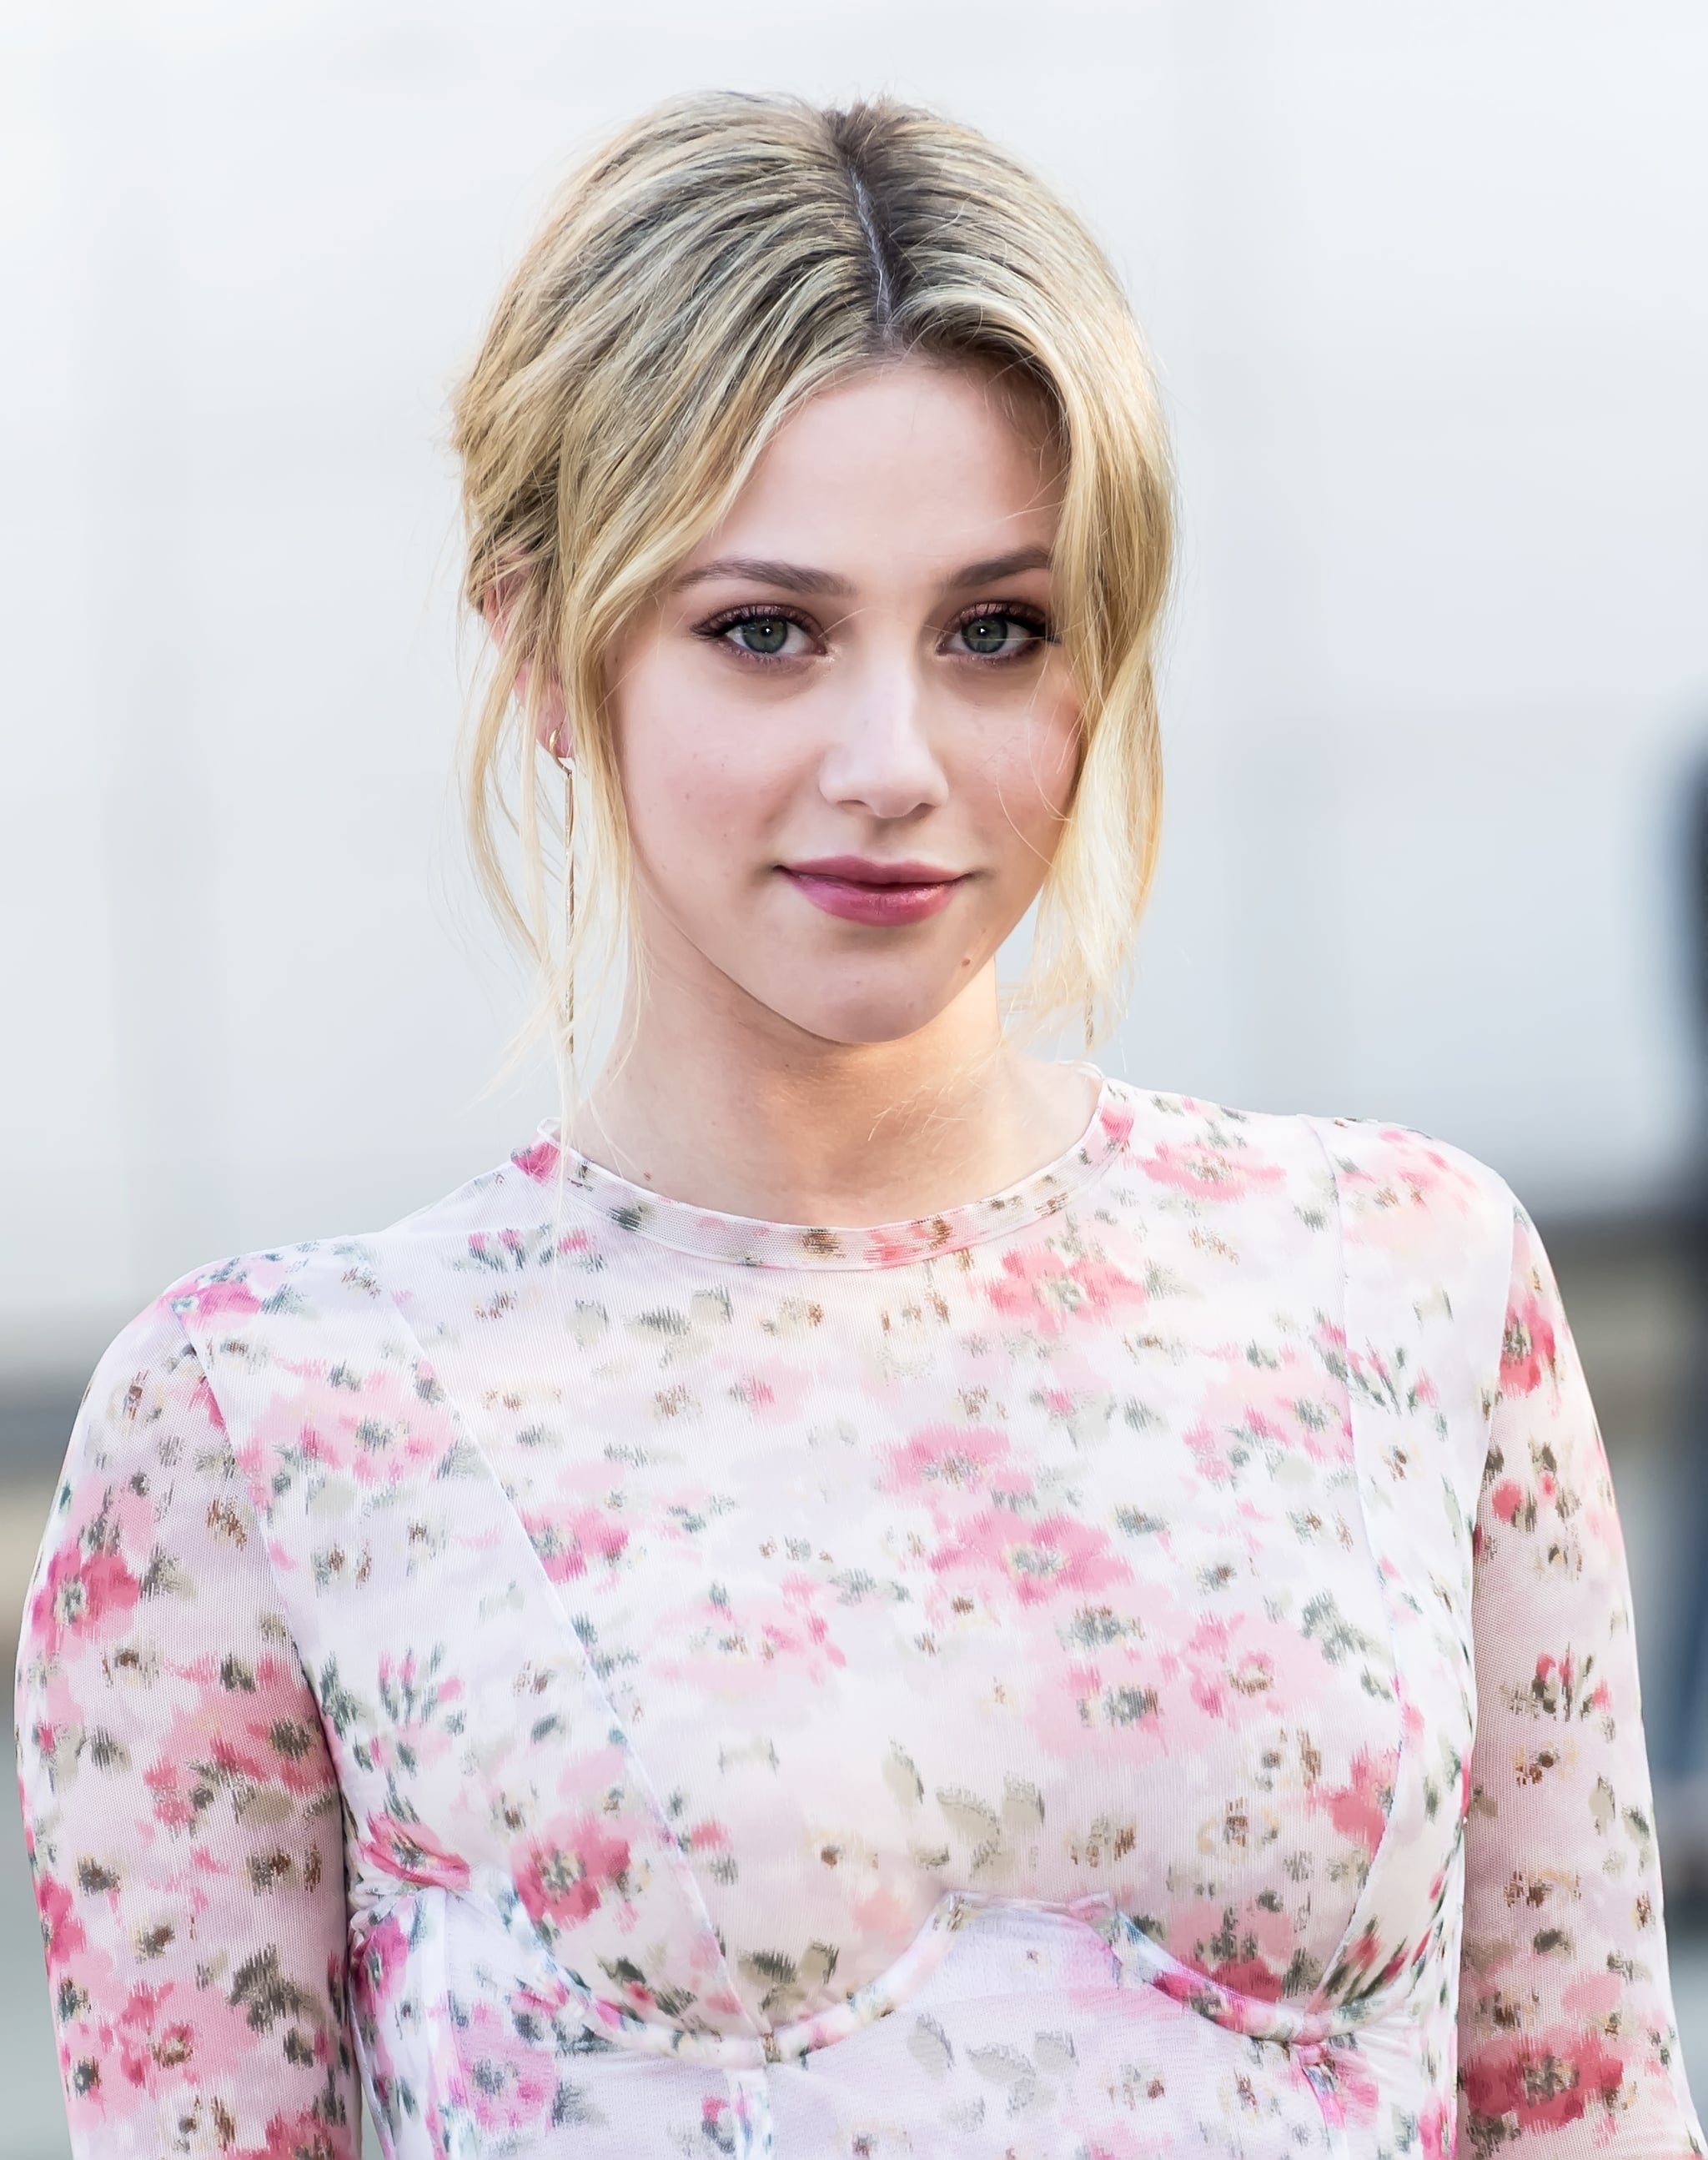 NEW YORK, NY - JUNE 04:  Actress Lili Reinhart is seen arriving to the 2018 CFDA Fashion Awards at Brooklyn Museum on June 4, 2018 in New York City.  (Photo by Gilbert Carrasquillo/GC Images)